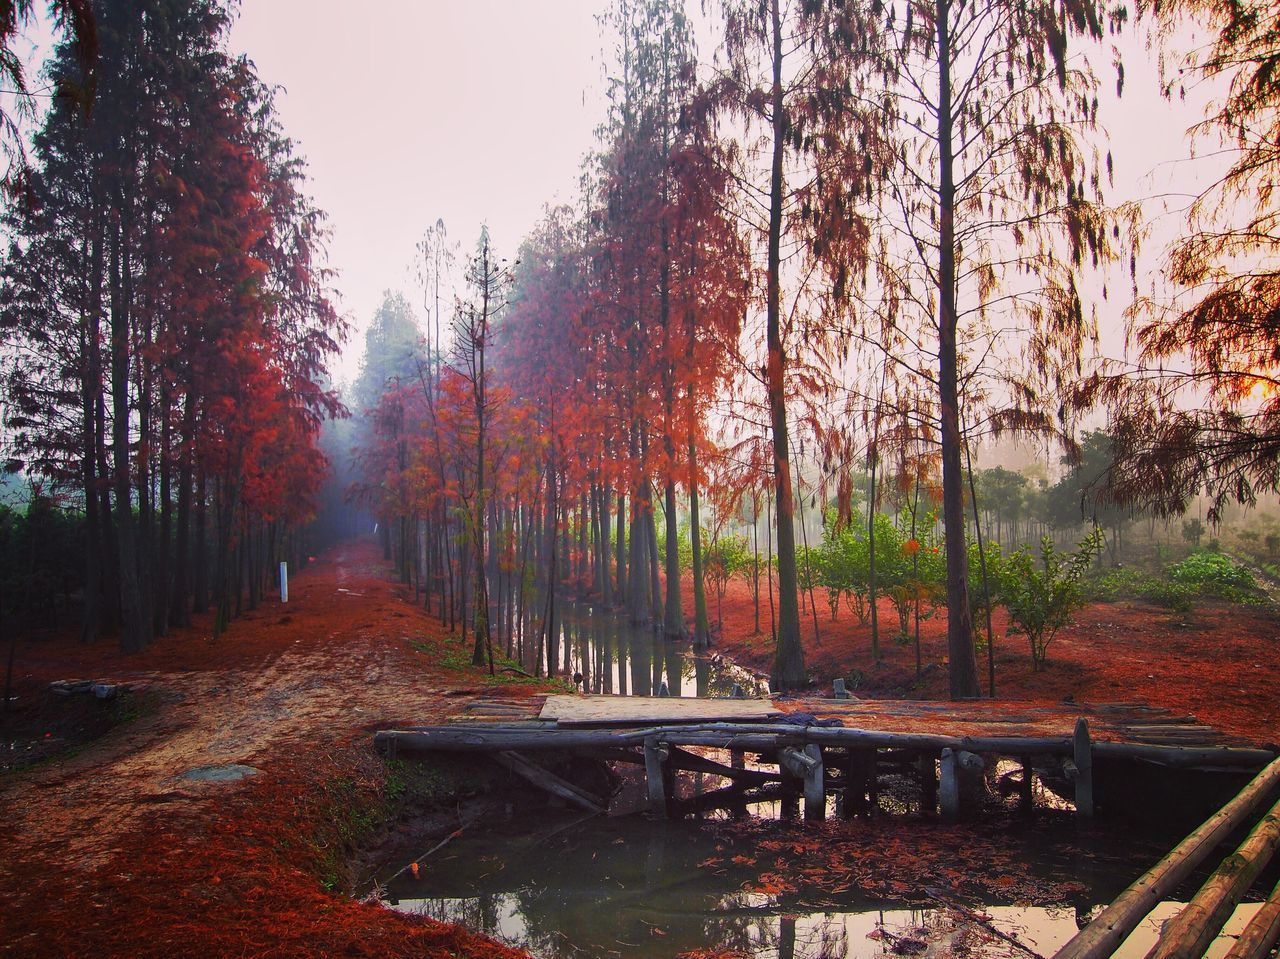 Tree Autumn Transportation Change Tranquility Forest Tranquil Scene Nature Day No People Scenics Beauty In Nature Growth Outdoors Water Sky